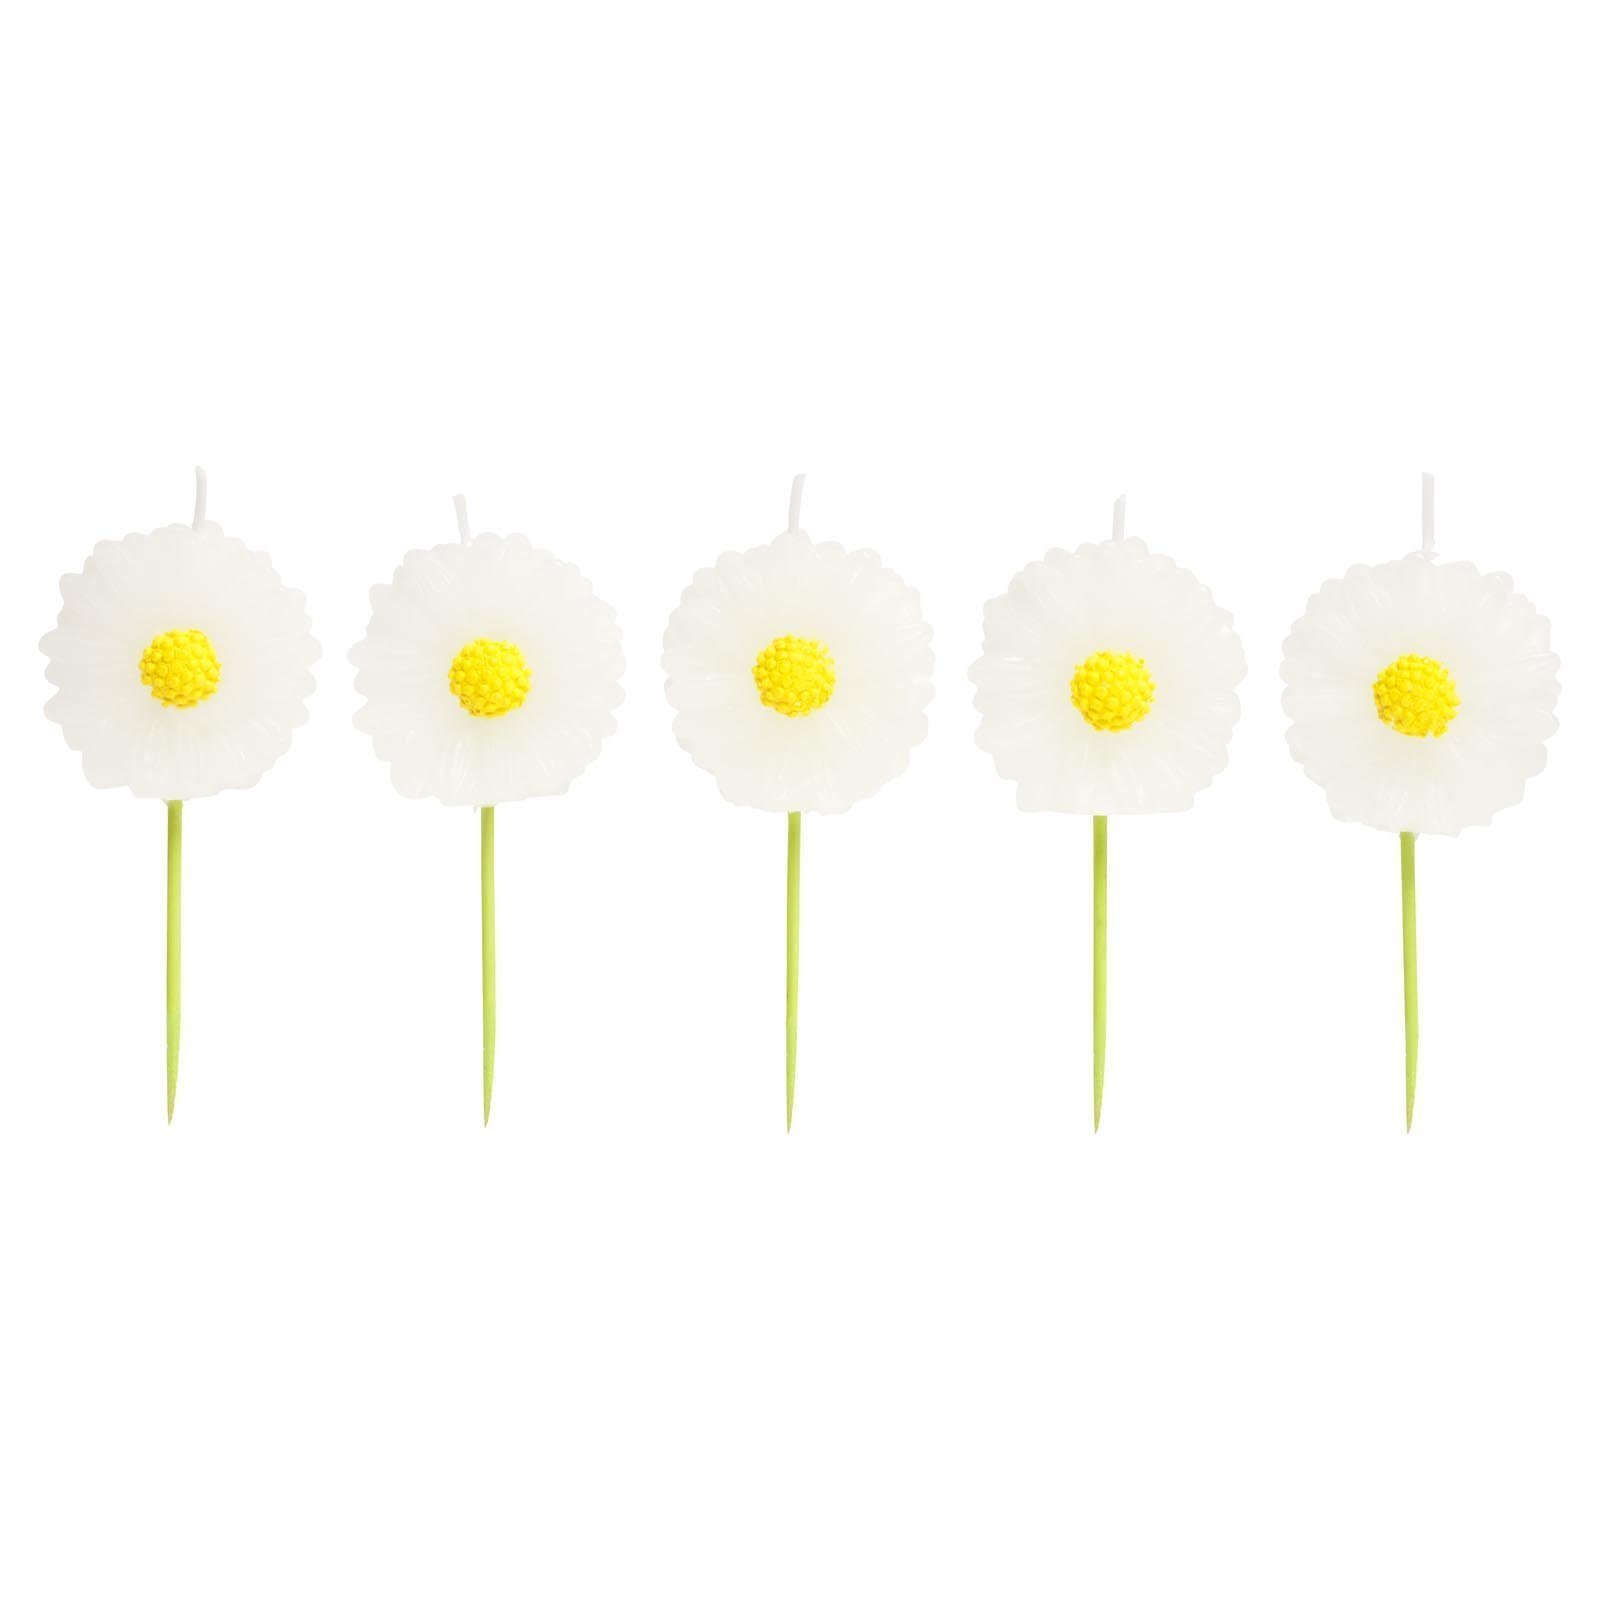 SunnyLIFE Themed Cake Candles in Animal, Plant, and Food Shapes, Set of 5 - Daisy White